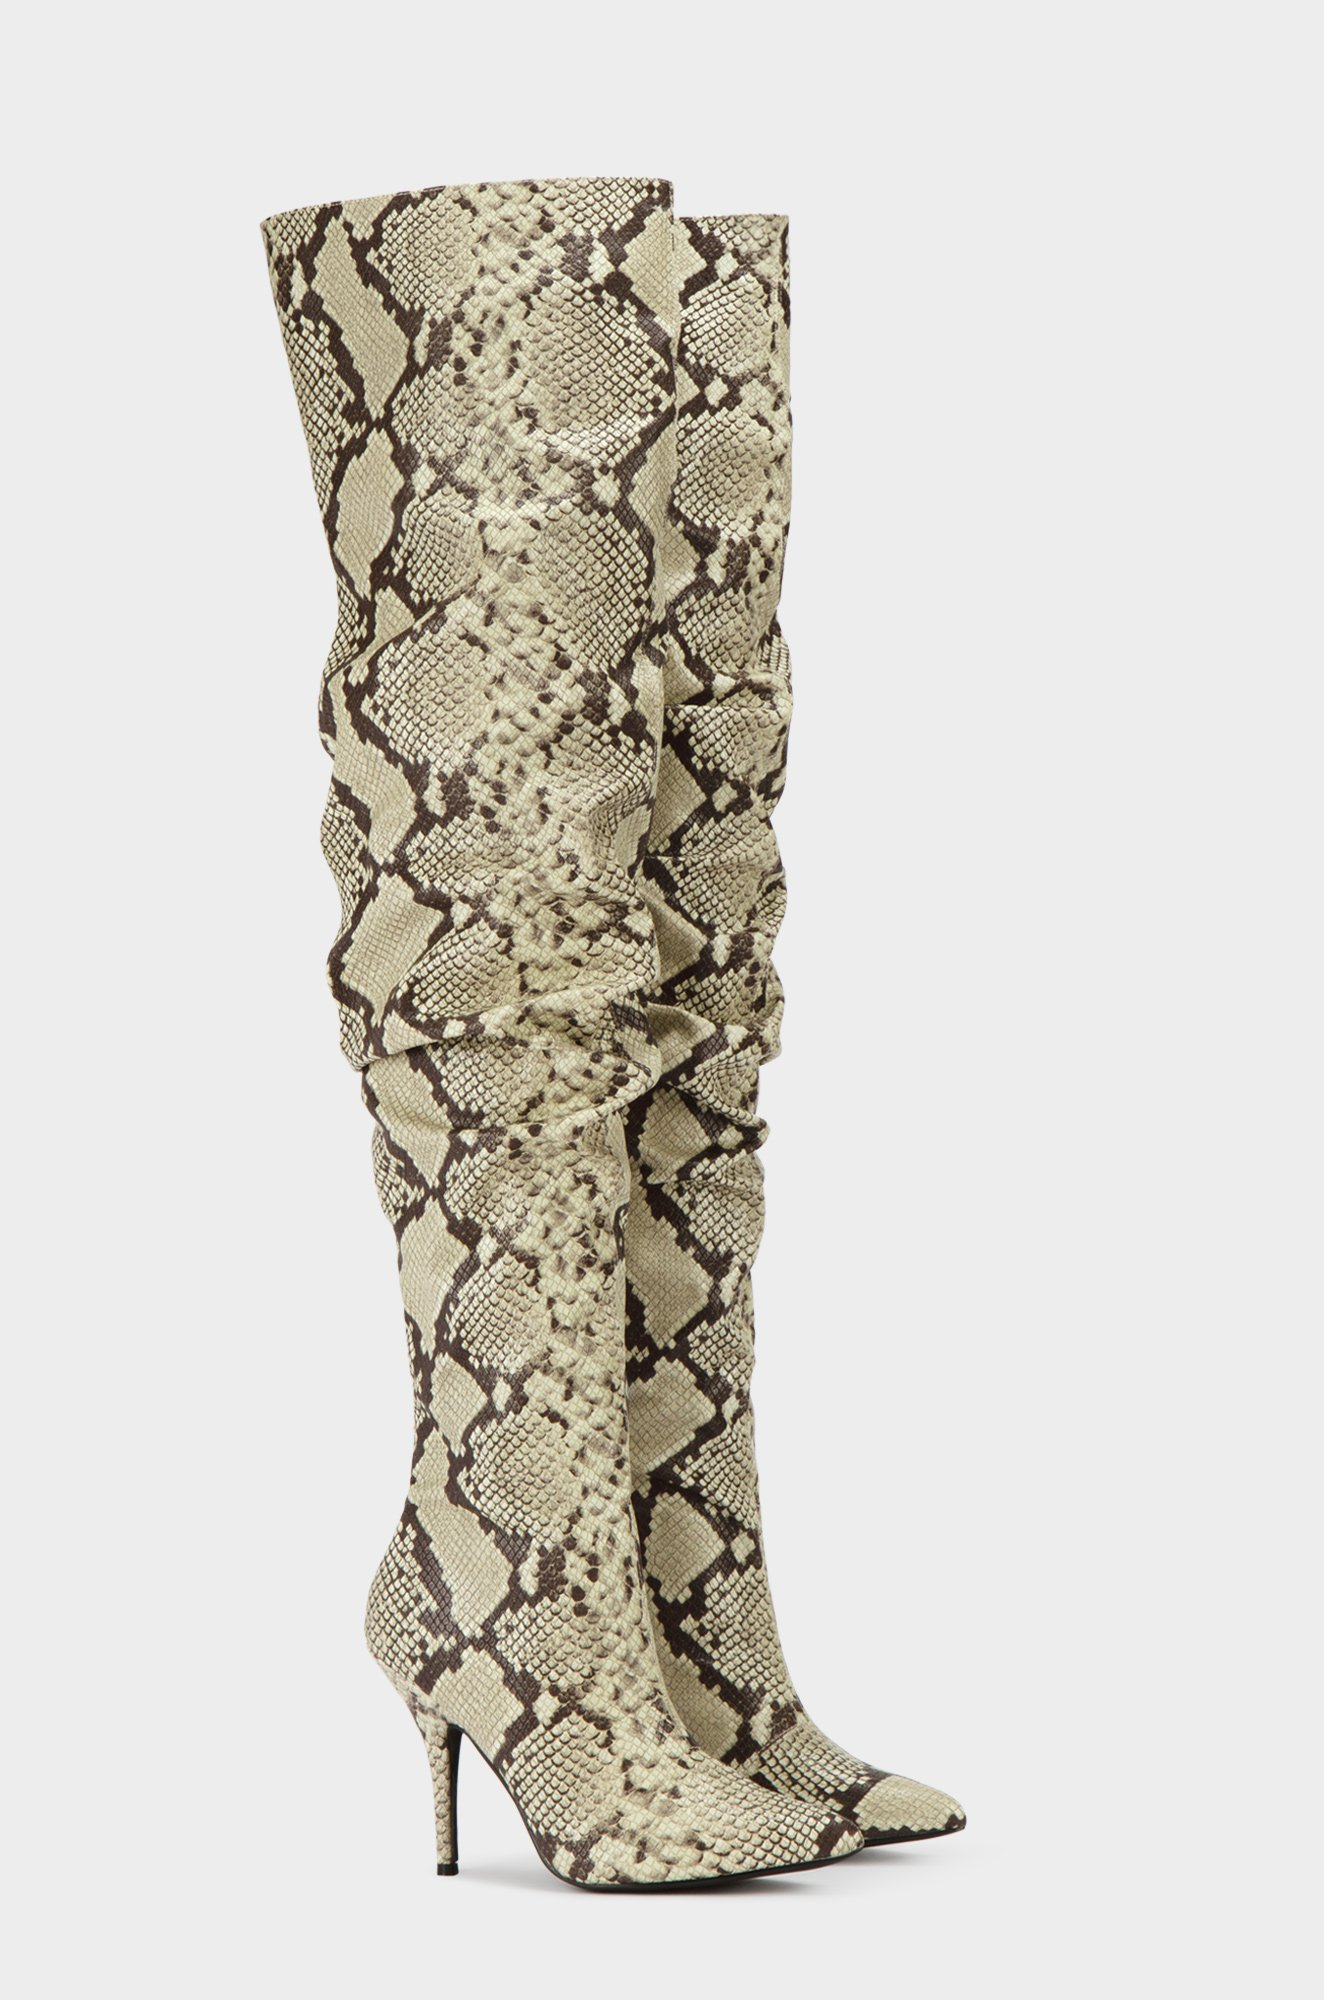 Cape-Robbin-Bown-Snake-Thigh-High-Slouch-Pointed-Toe-Over-The-Knee-Stiletto-Boot thumbnail 20